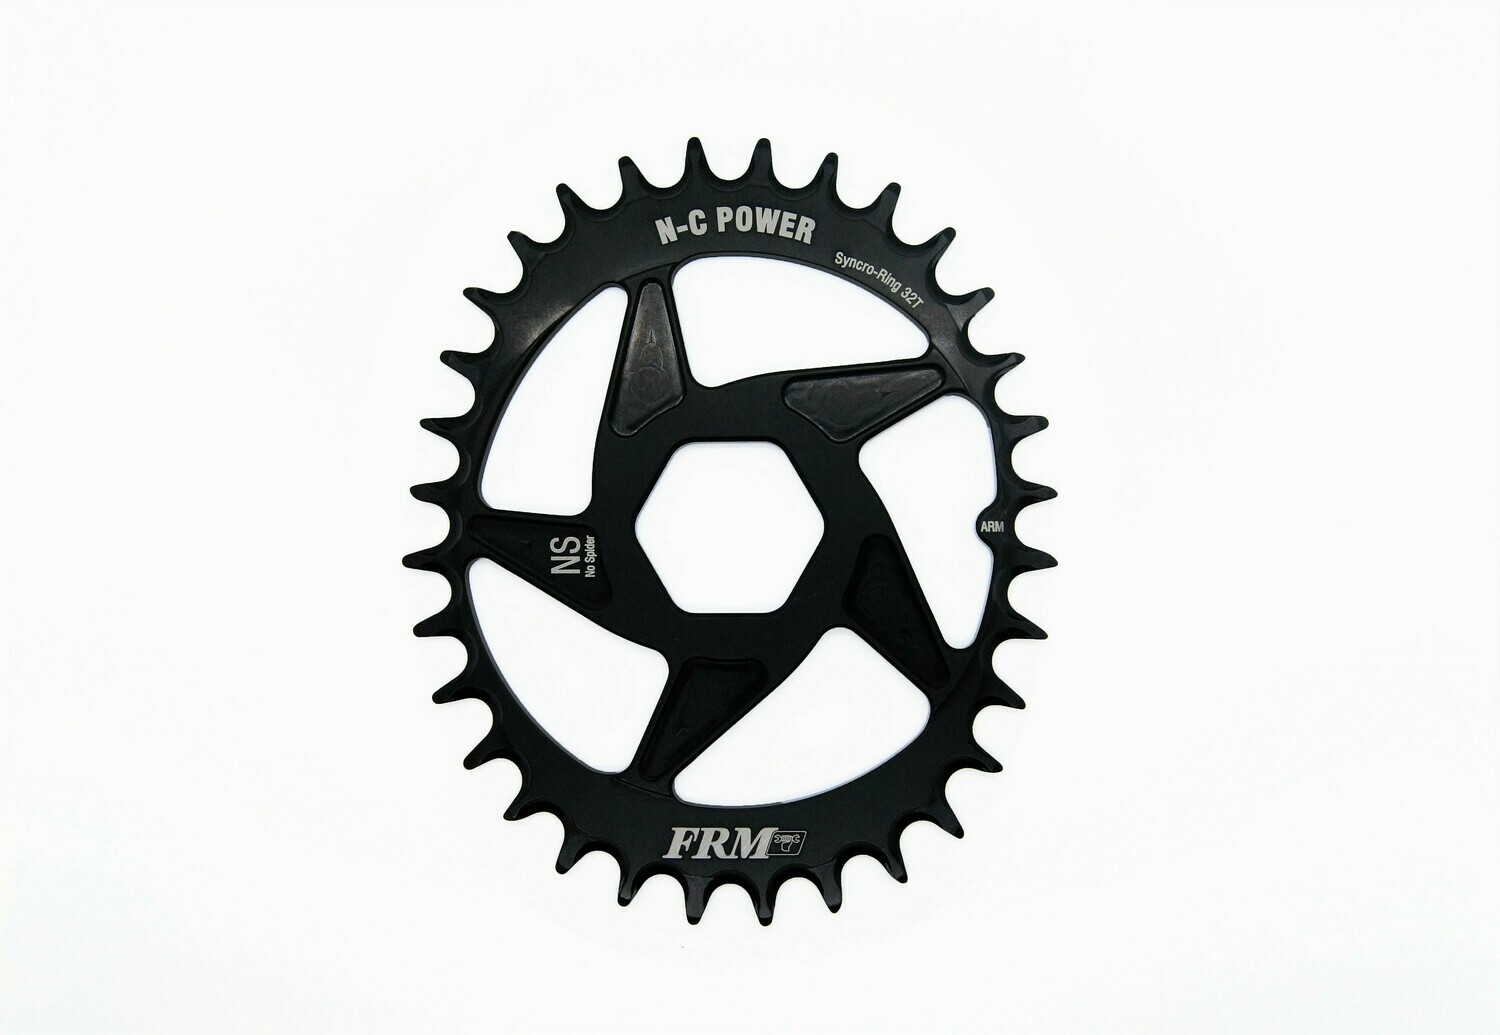 N-C Power Chainring for FRM